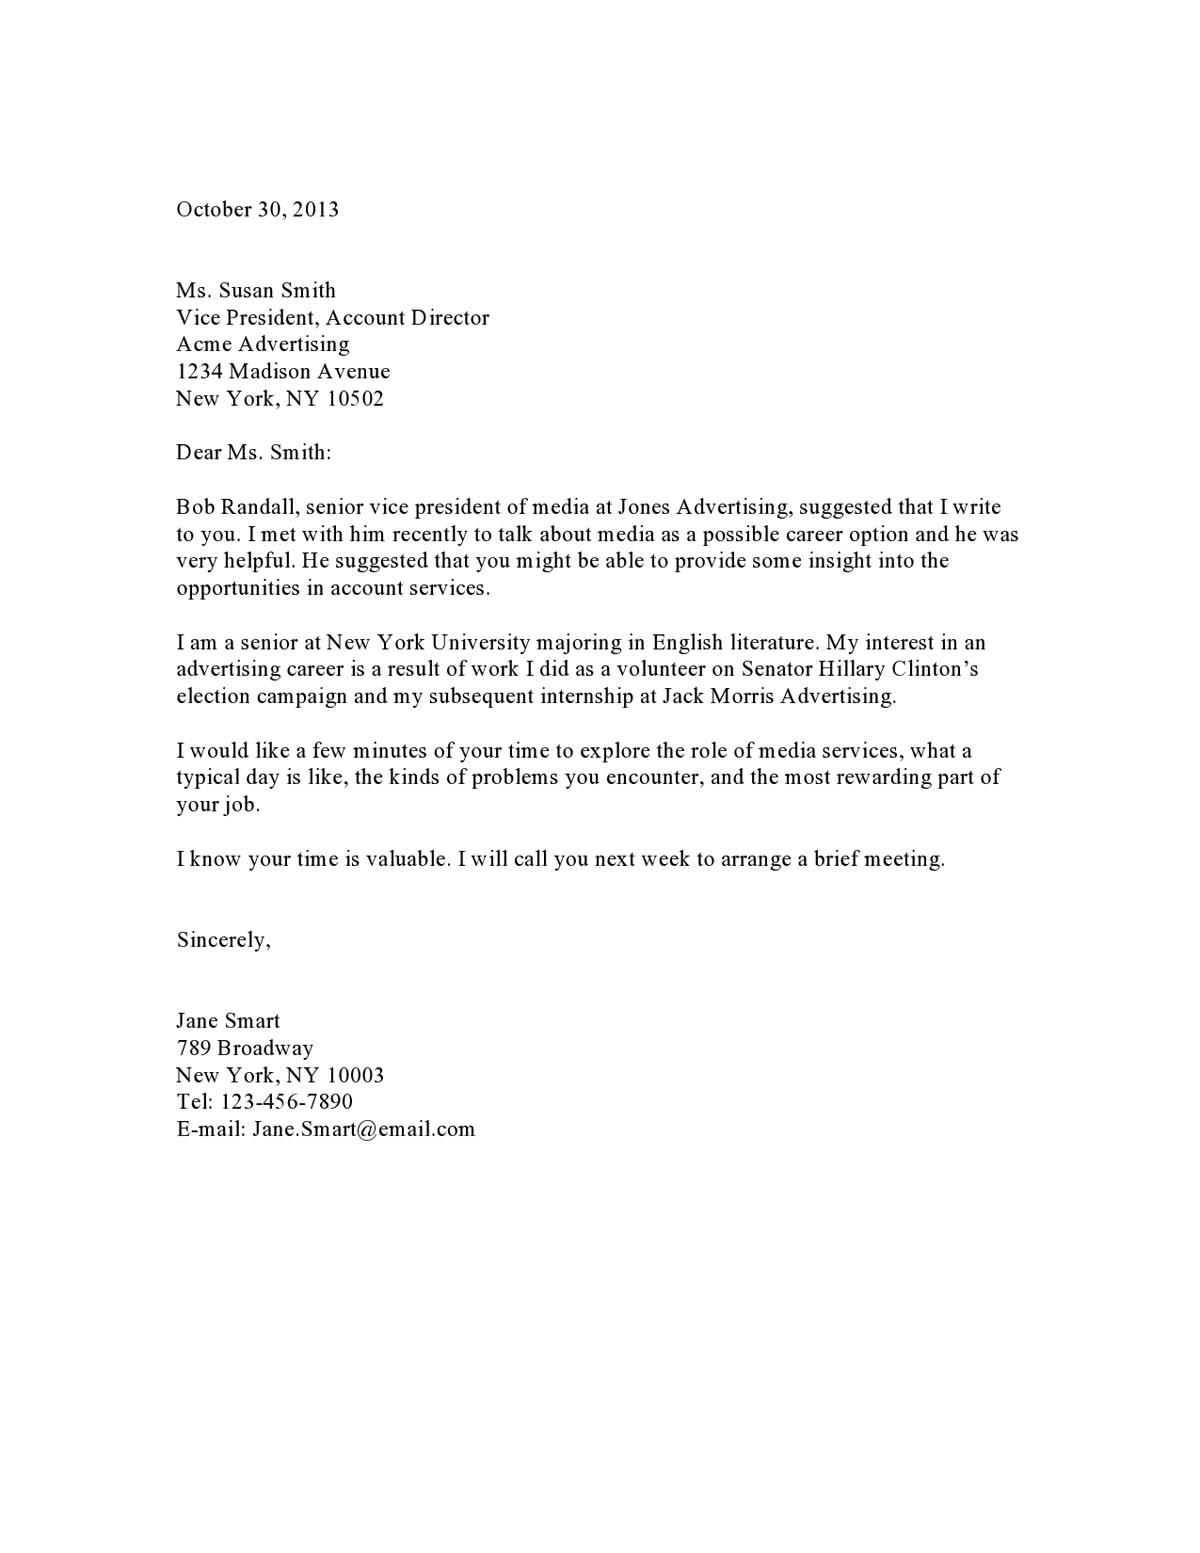 cover letter for a job sample cover letter for applying a 13097 | sample cover letter for applying a job 16